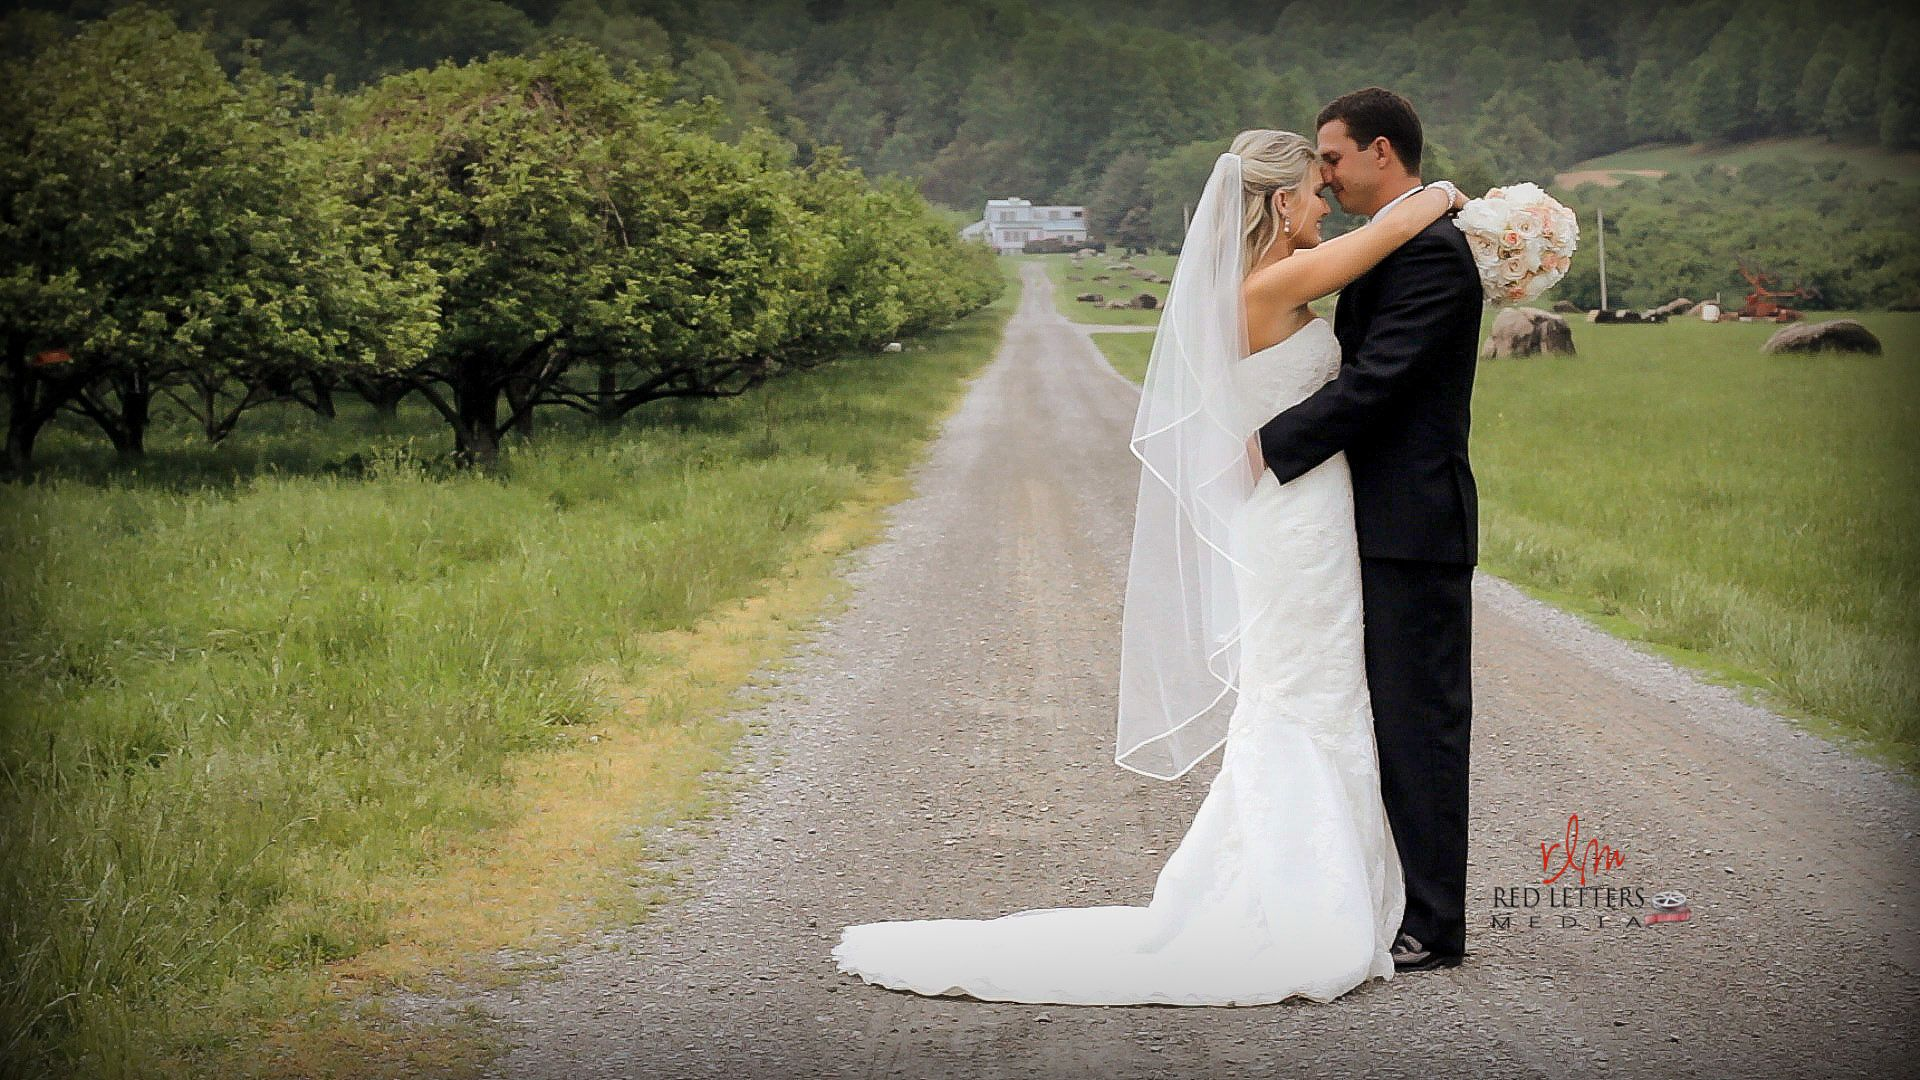 Carrie And Zach At Sundara Wedding Venue Wedding Wedding Dresses Lace Our Wedding Day